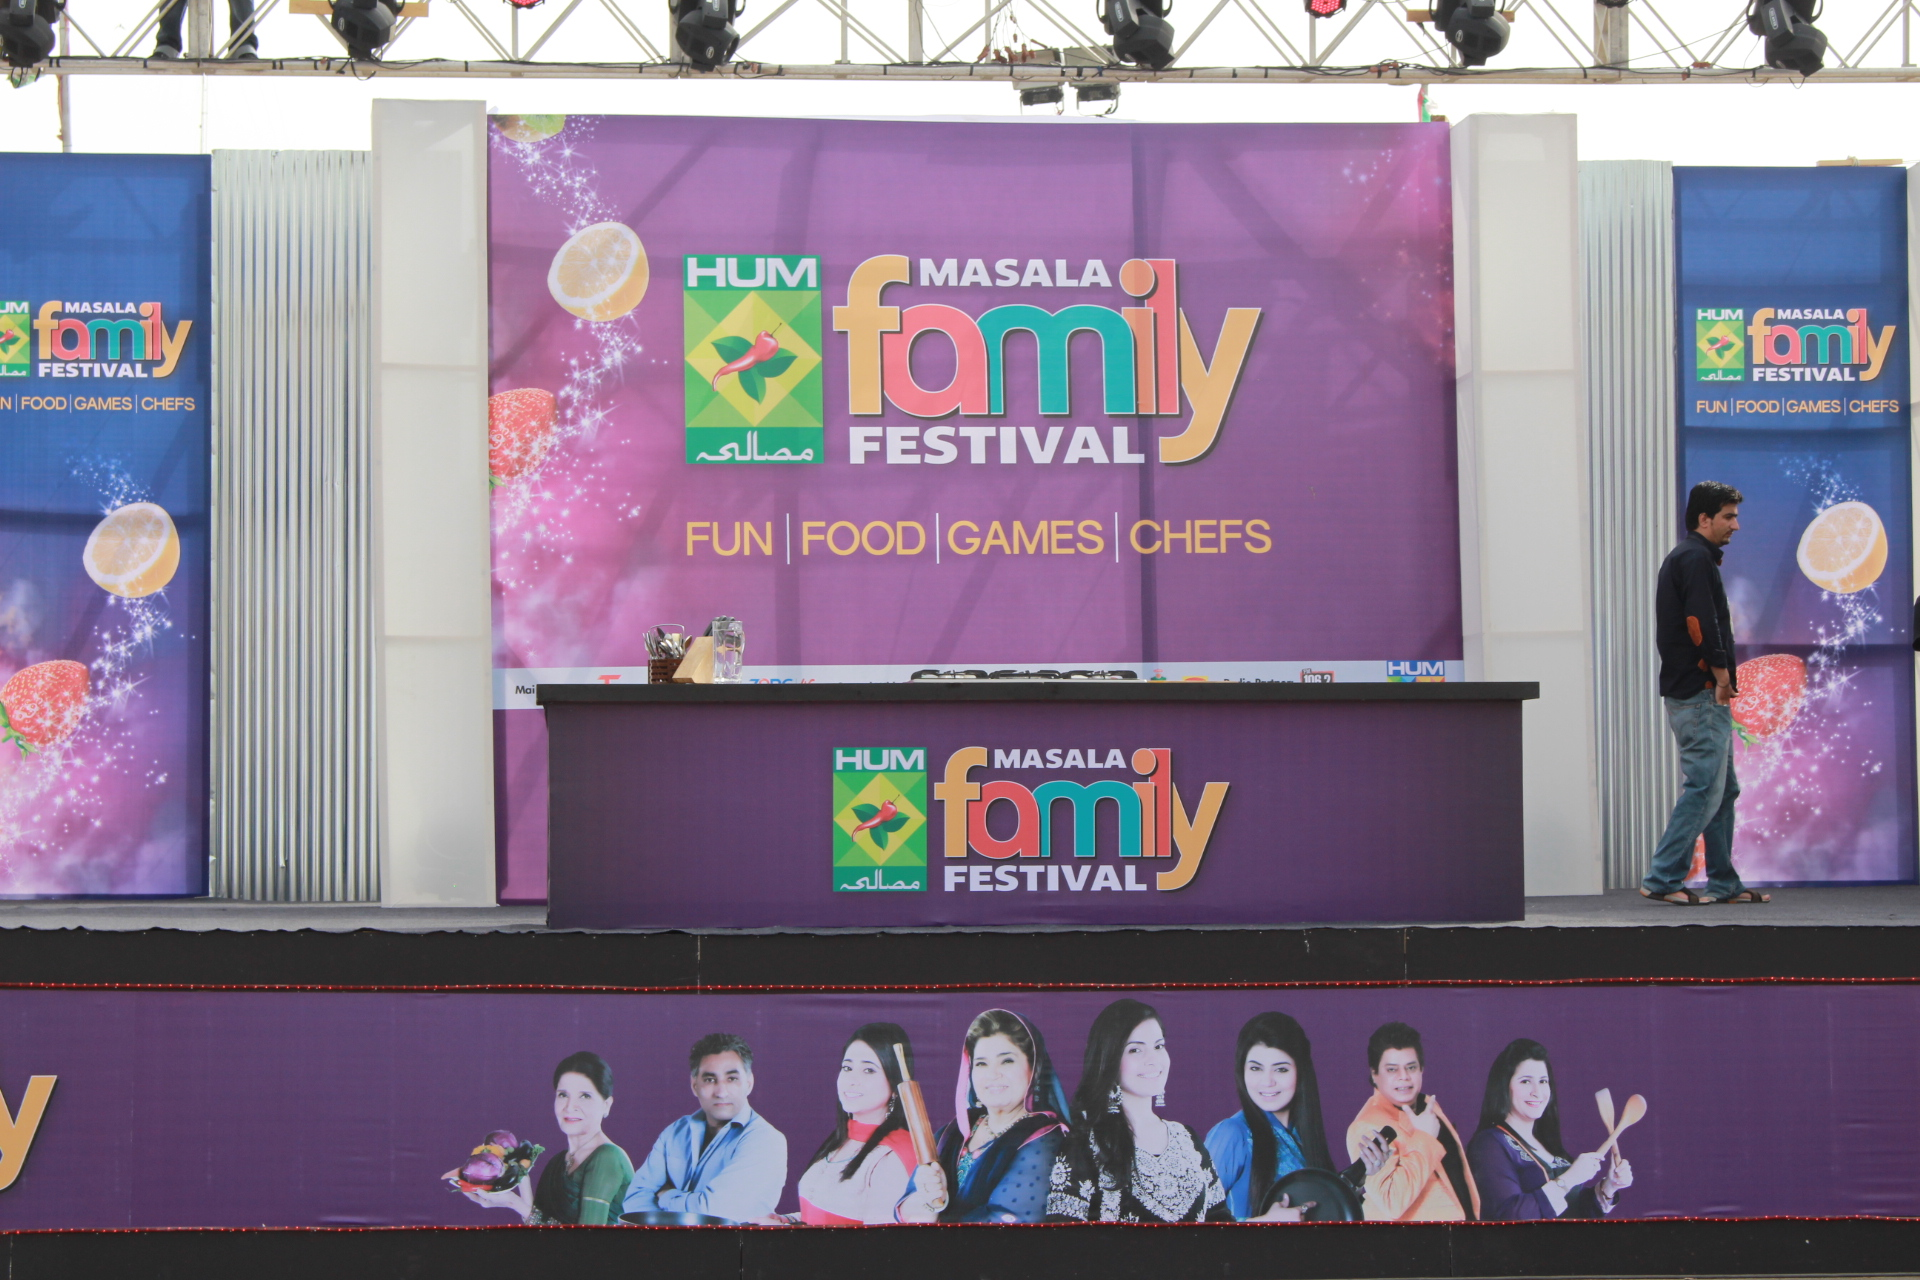 Masala TV Family Festival 31 May 2014